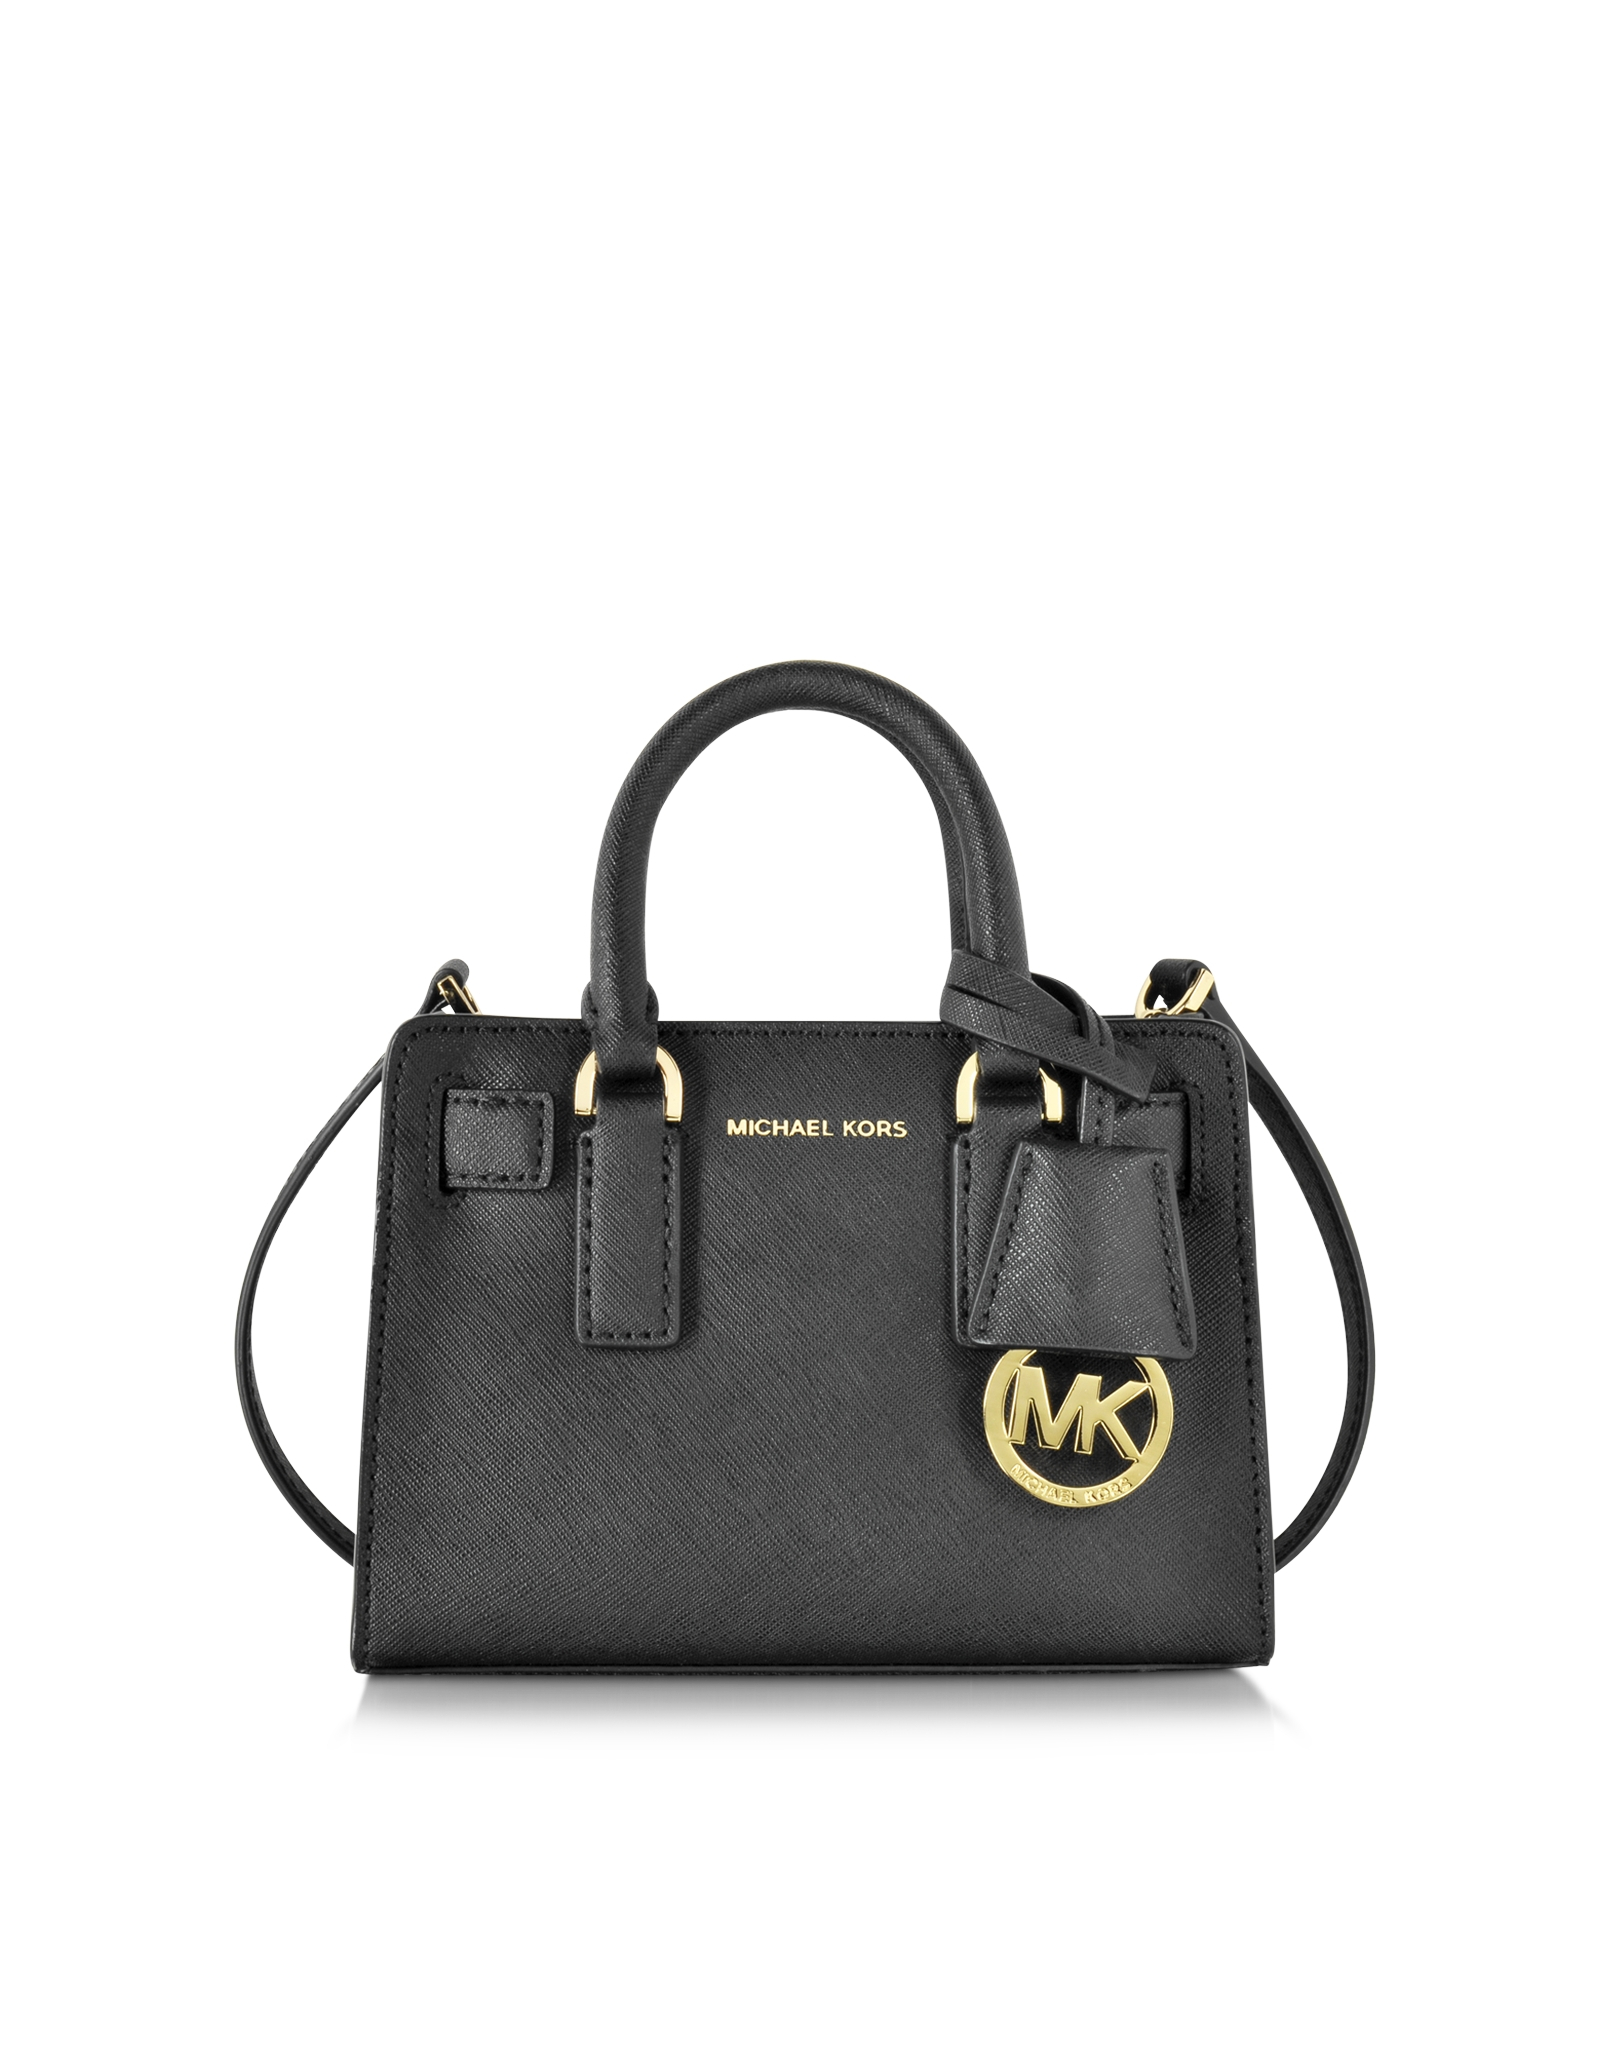 95d1326278a3a Lyst - Michael Kors Dillon Black Saffiano Leather Extra Small ...